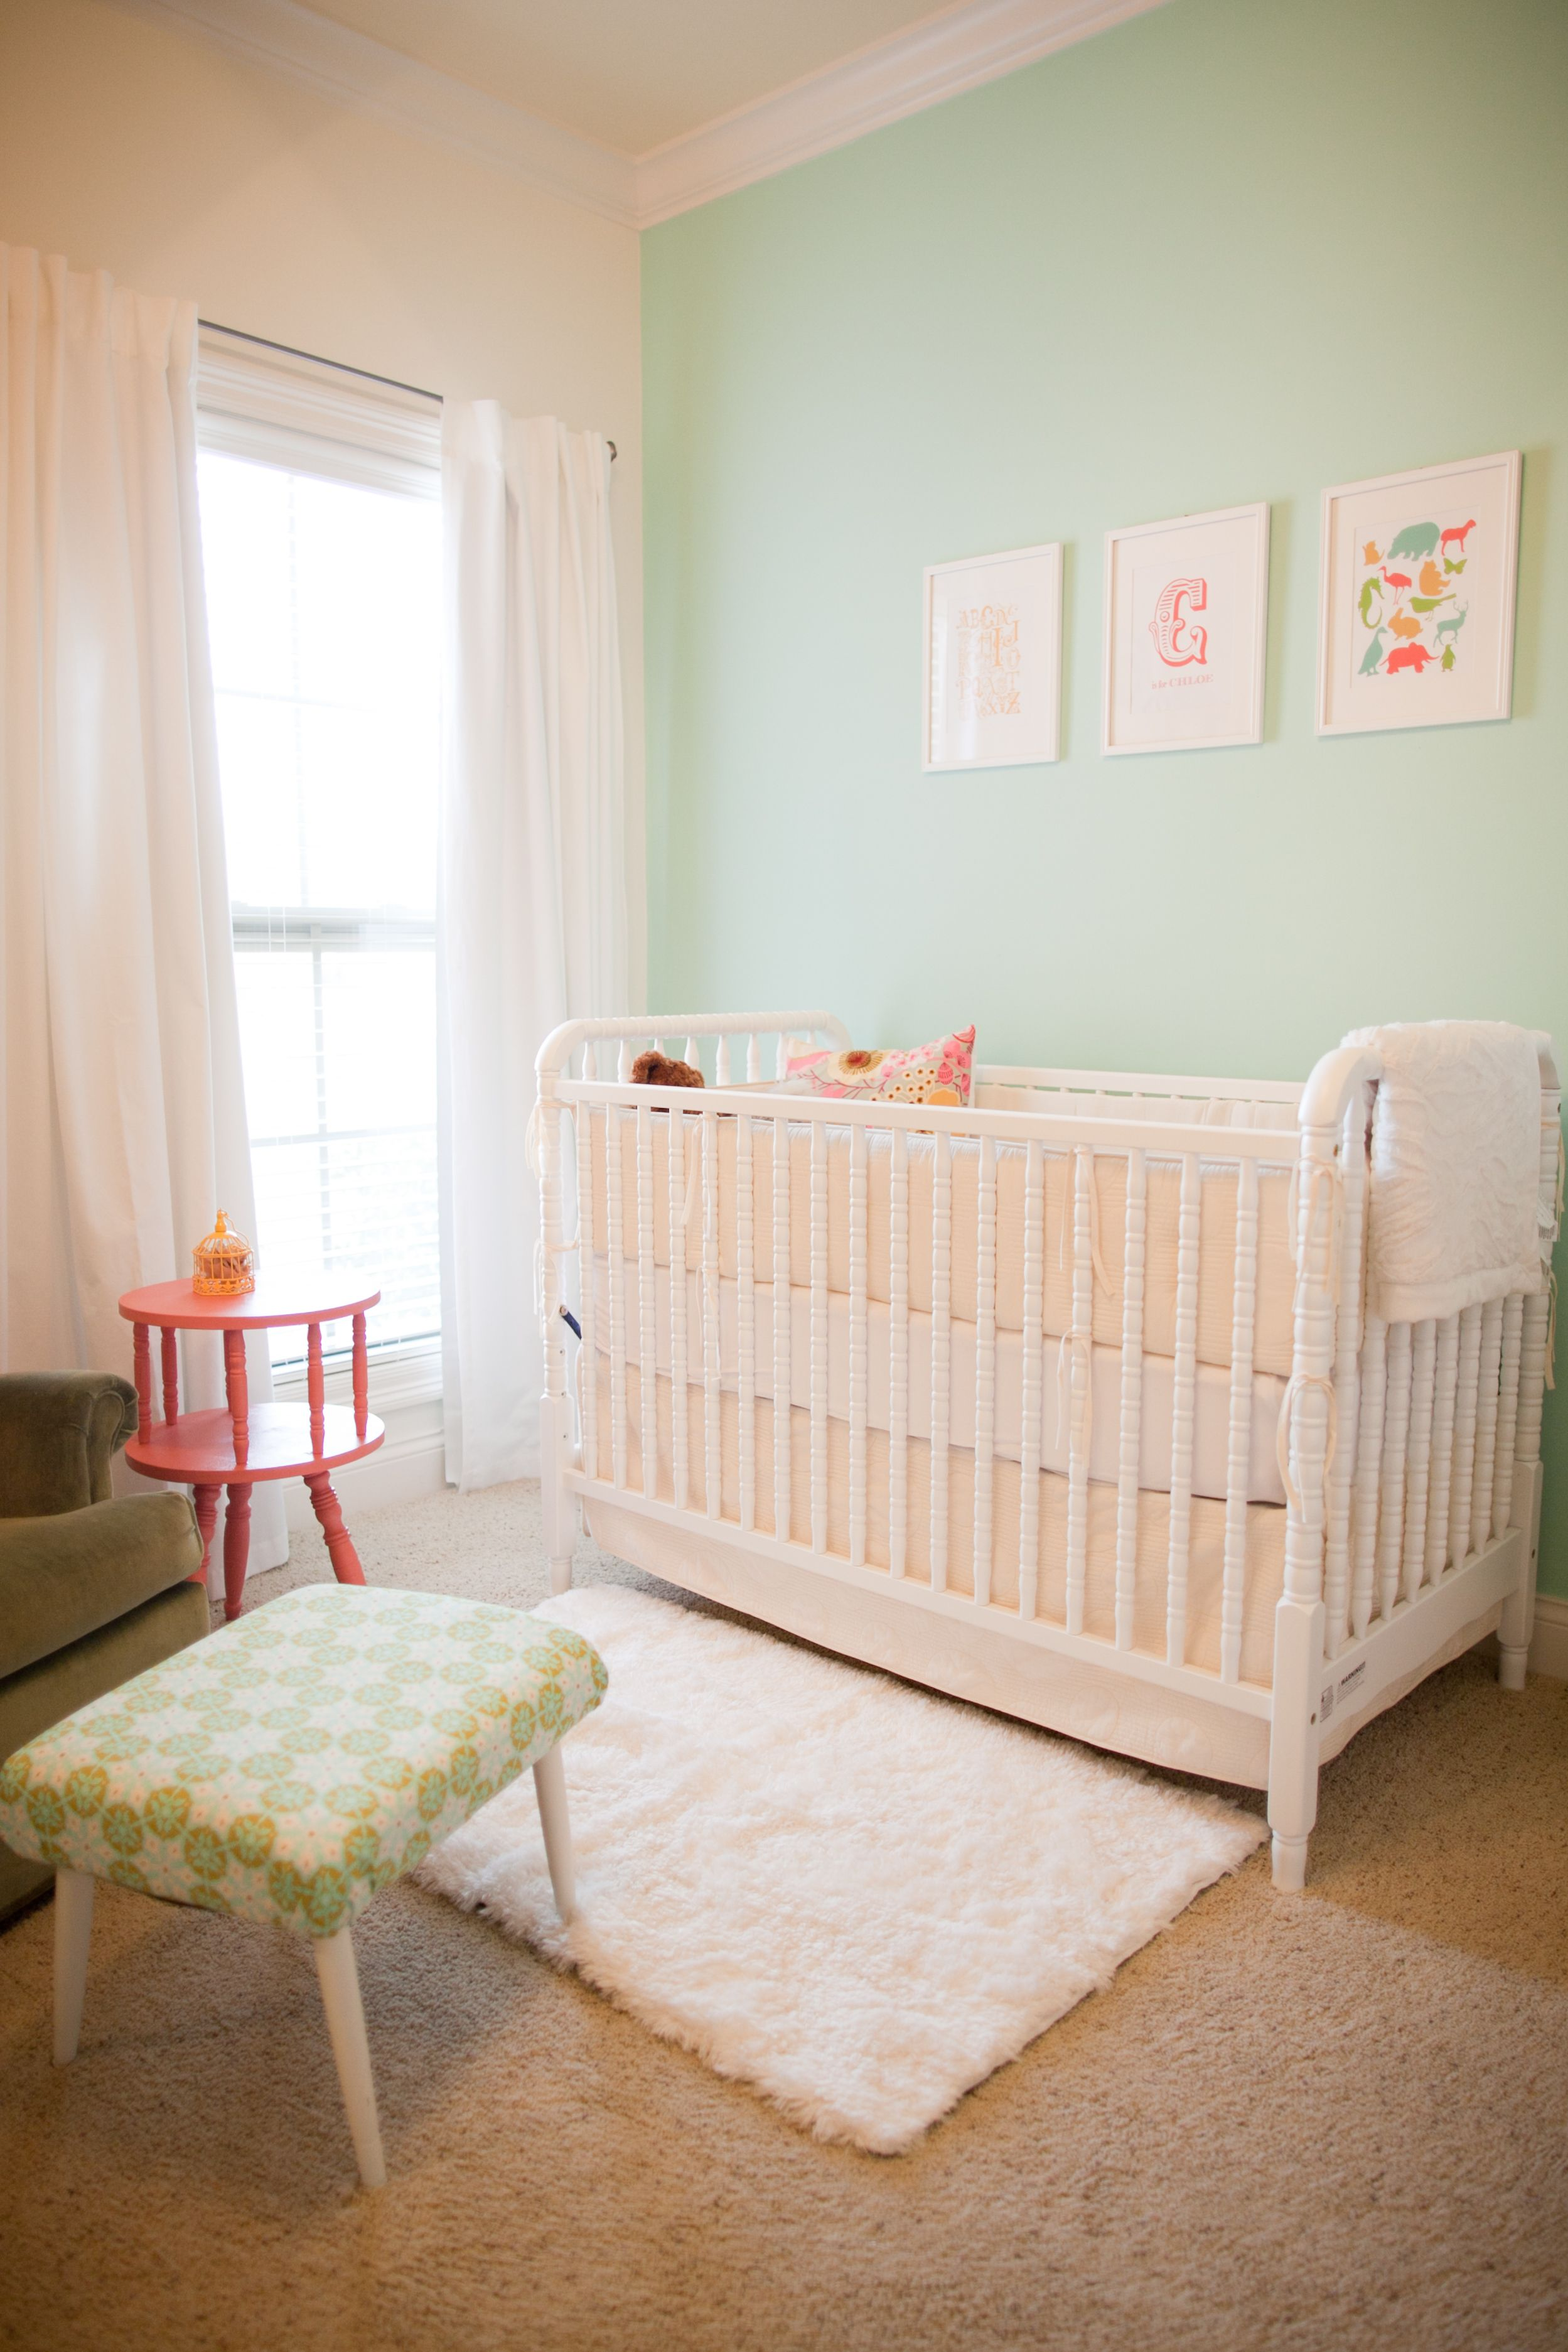 Baby cribs on craigslist - This Is The Crib I Found On Craigslist Sooooo Excited Love The Skirt On This One